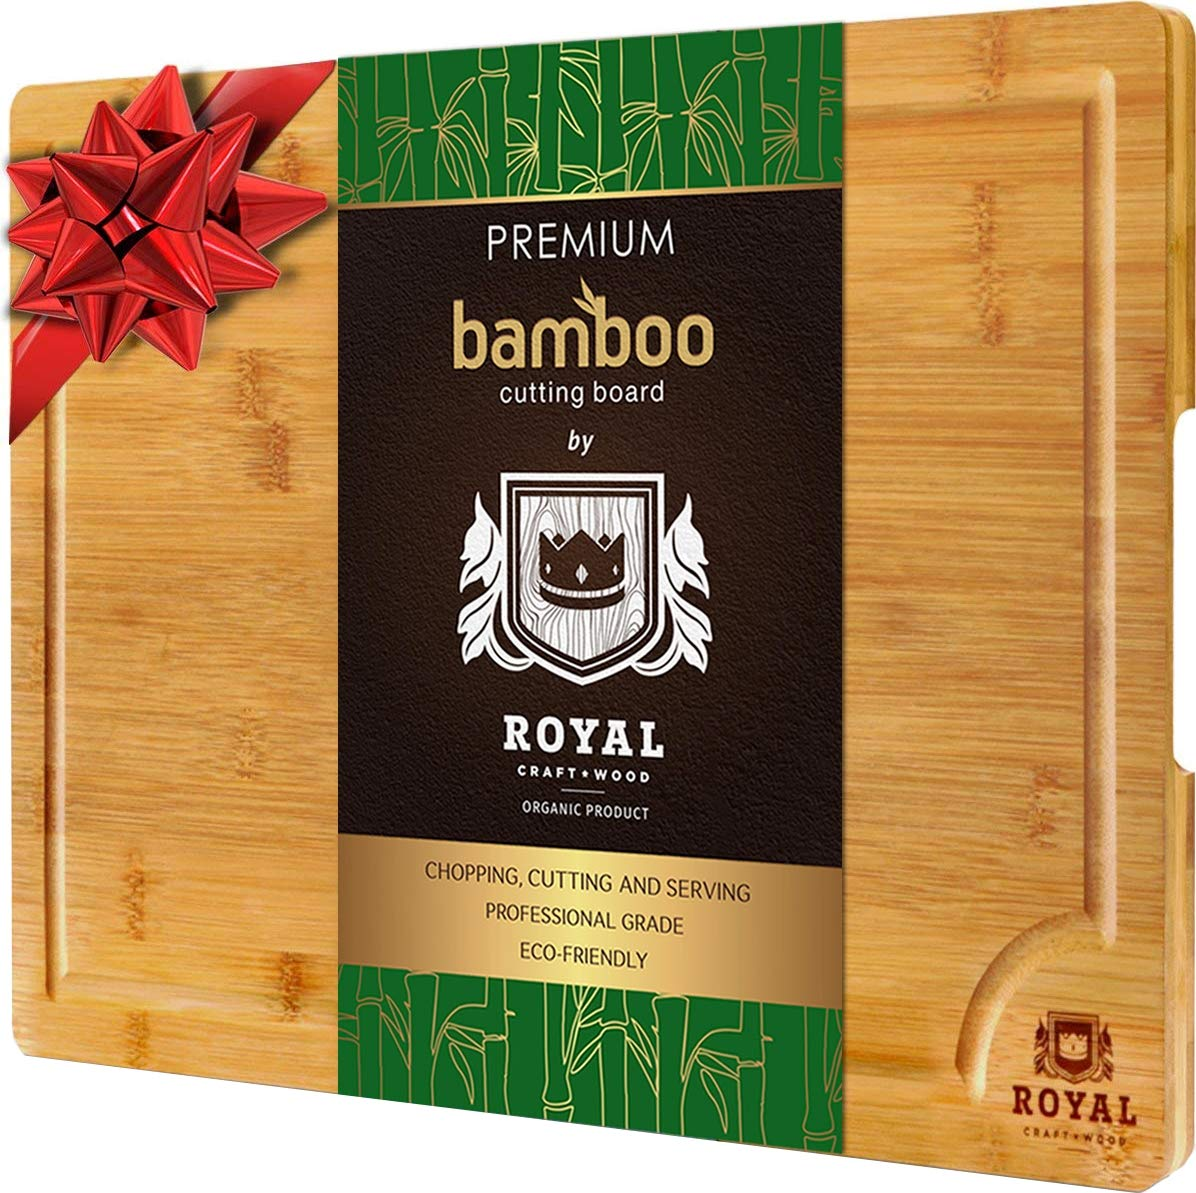 EXTRA LARGE Organic Bamboo Cutting Board with Juice Groove - Best Kitchen Chopping Board for Meat (Butcher Block) Cheese and Vegetables | Anti Microbial Heavy Duty Serving Tray w/Handles - 18 x 12 by Royal Craft Wood